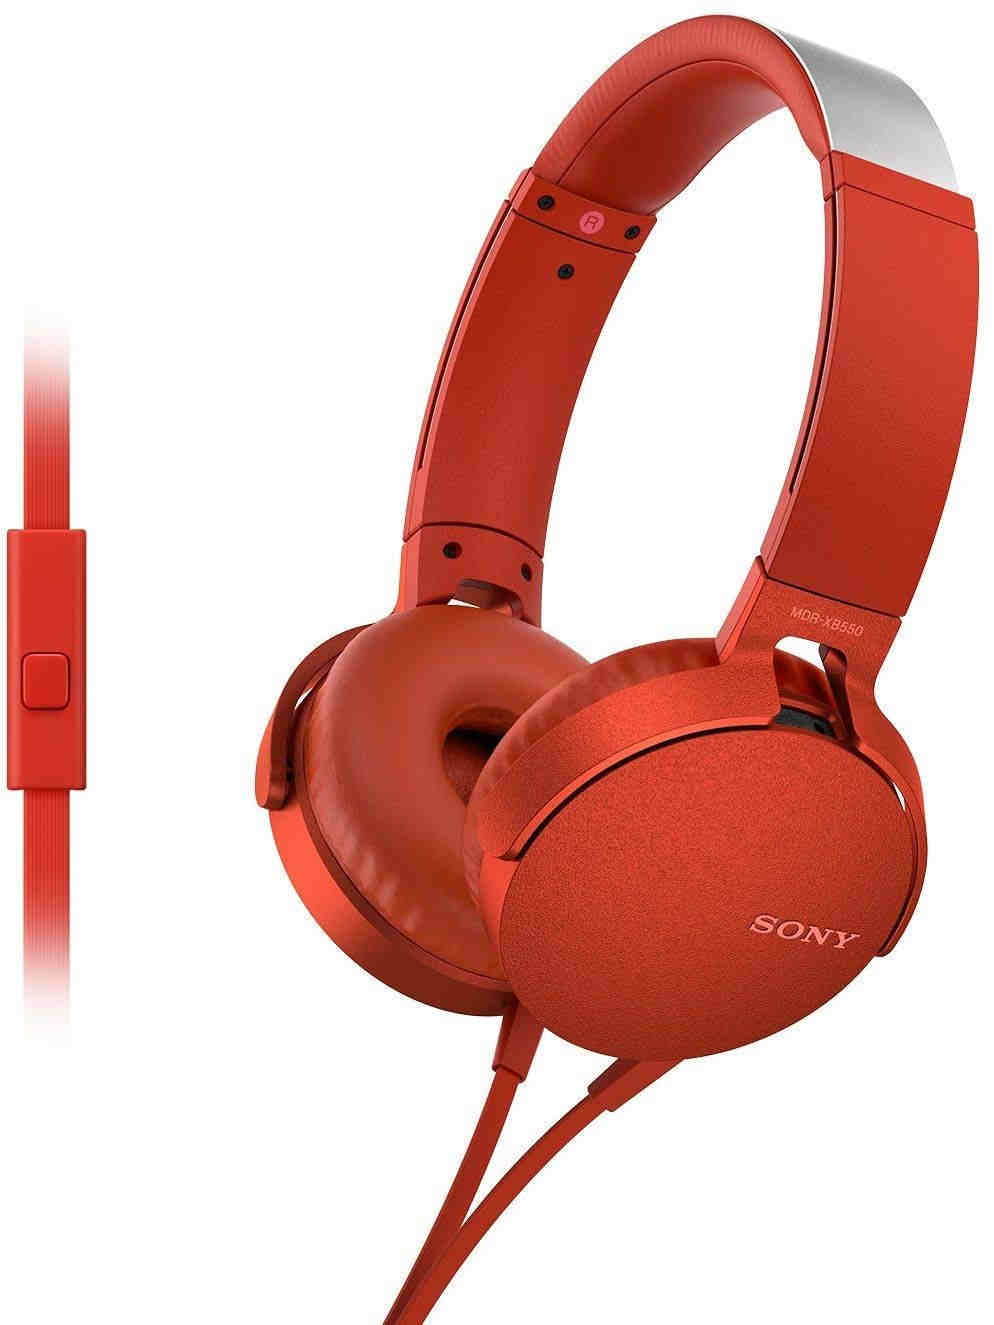 Sony MDR-XB550AP On-Ear Extra Bass Headphones, Red